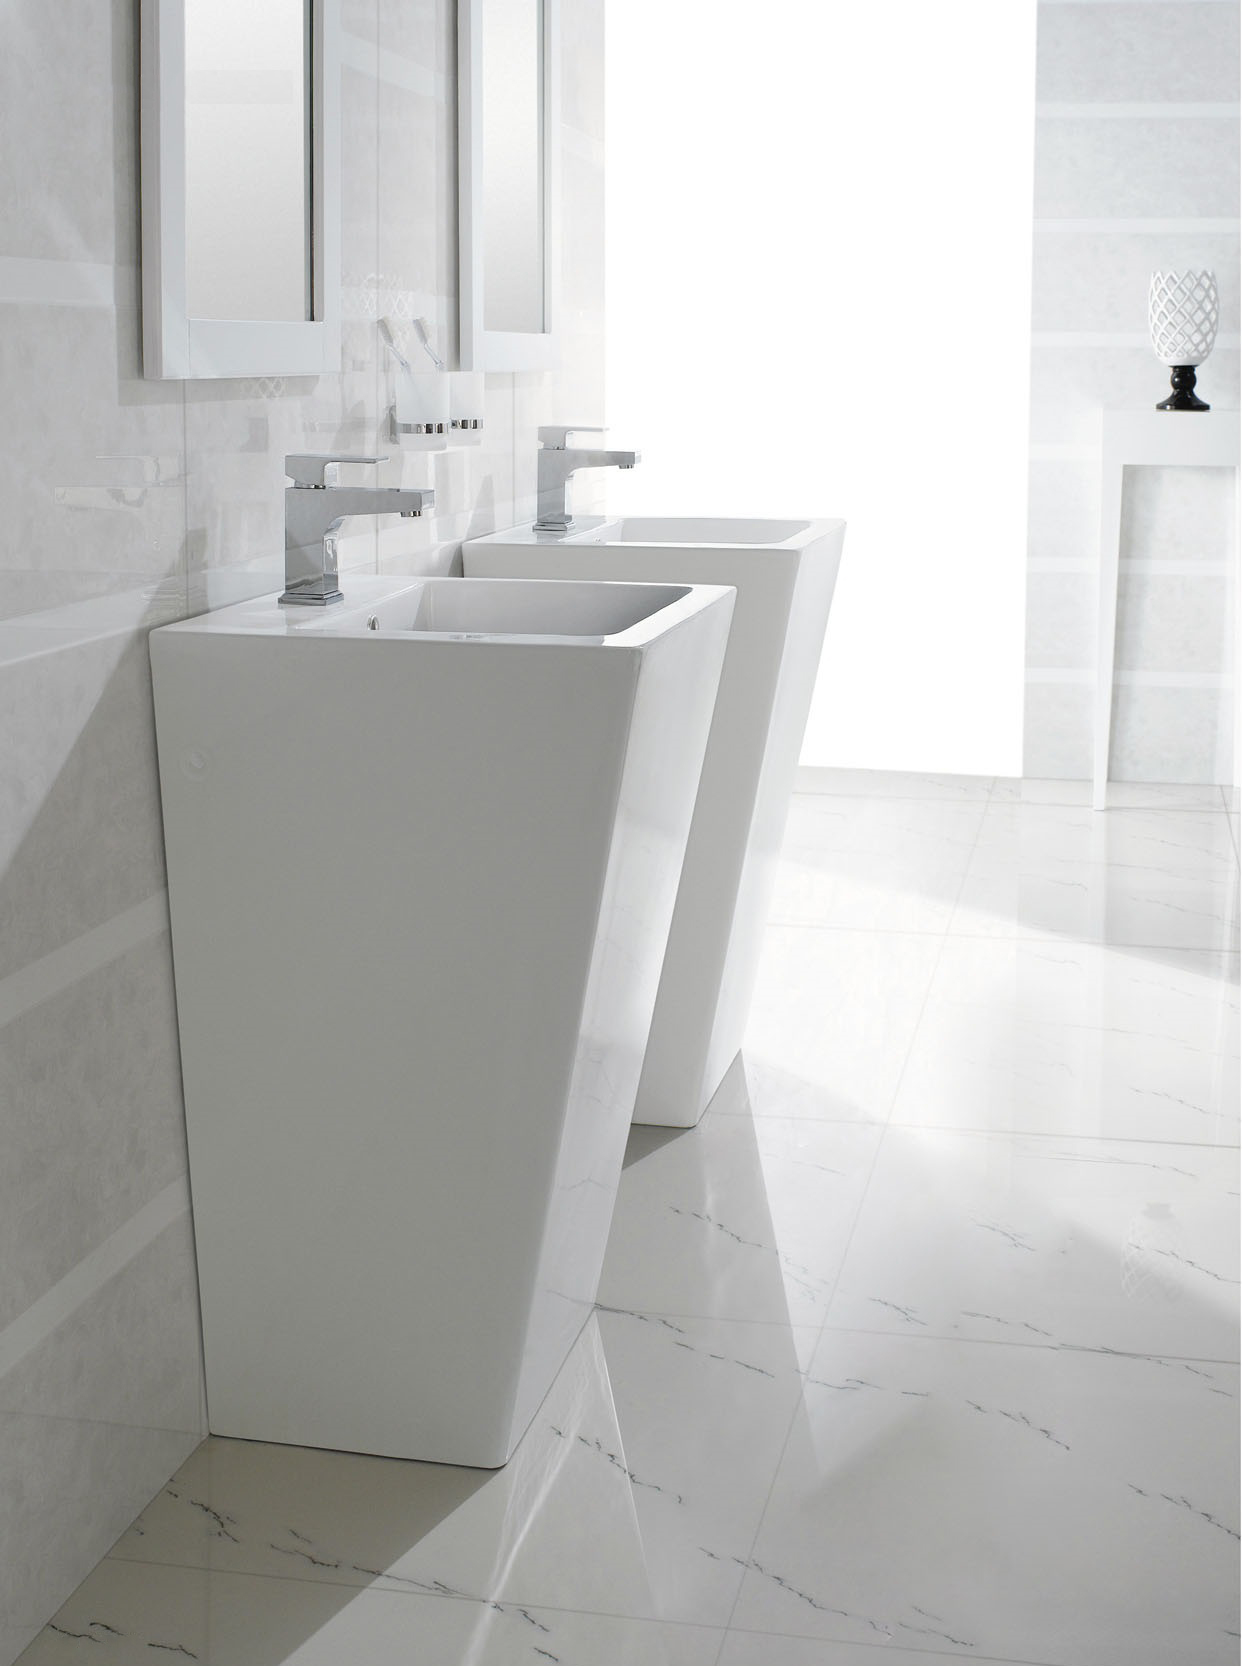 Modern Pedestal Sinks For Small Bathrooms : bathroom cabinets pedestal sinks bresica modern bathroom pedestal sink ...